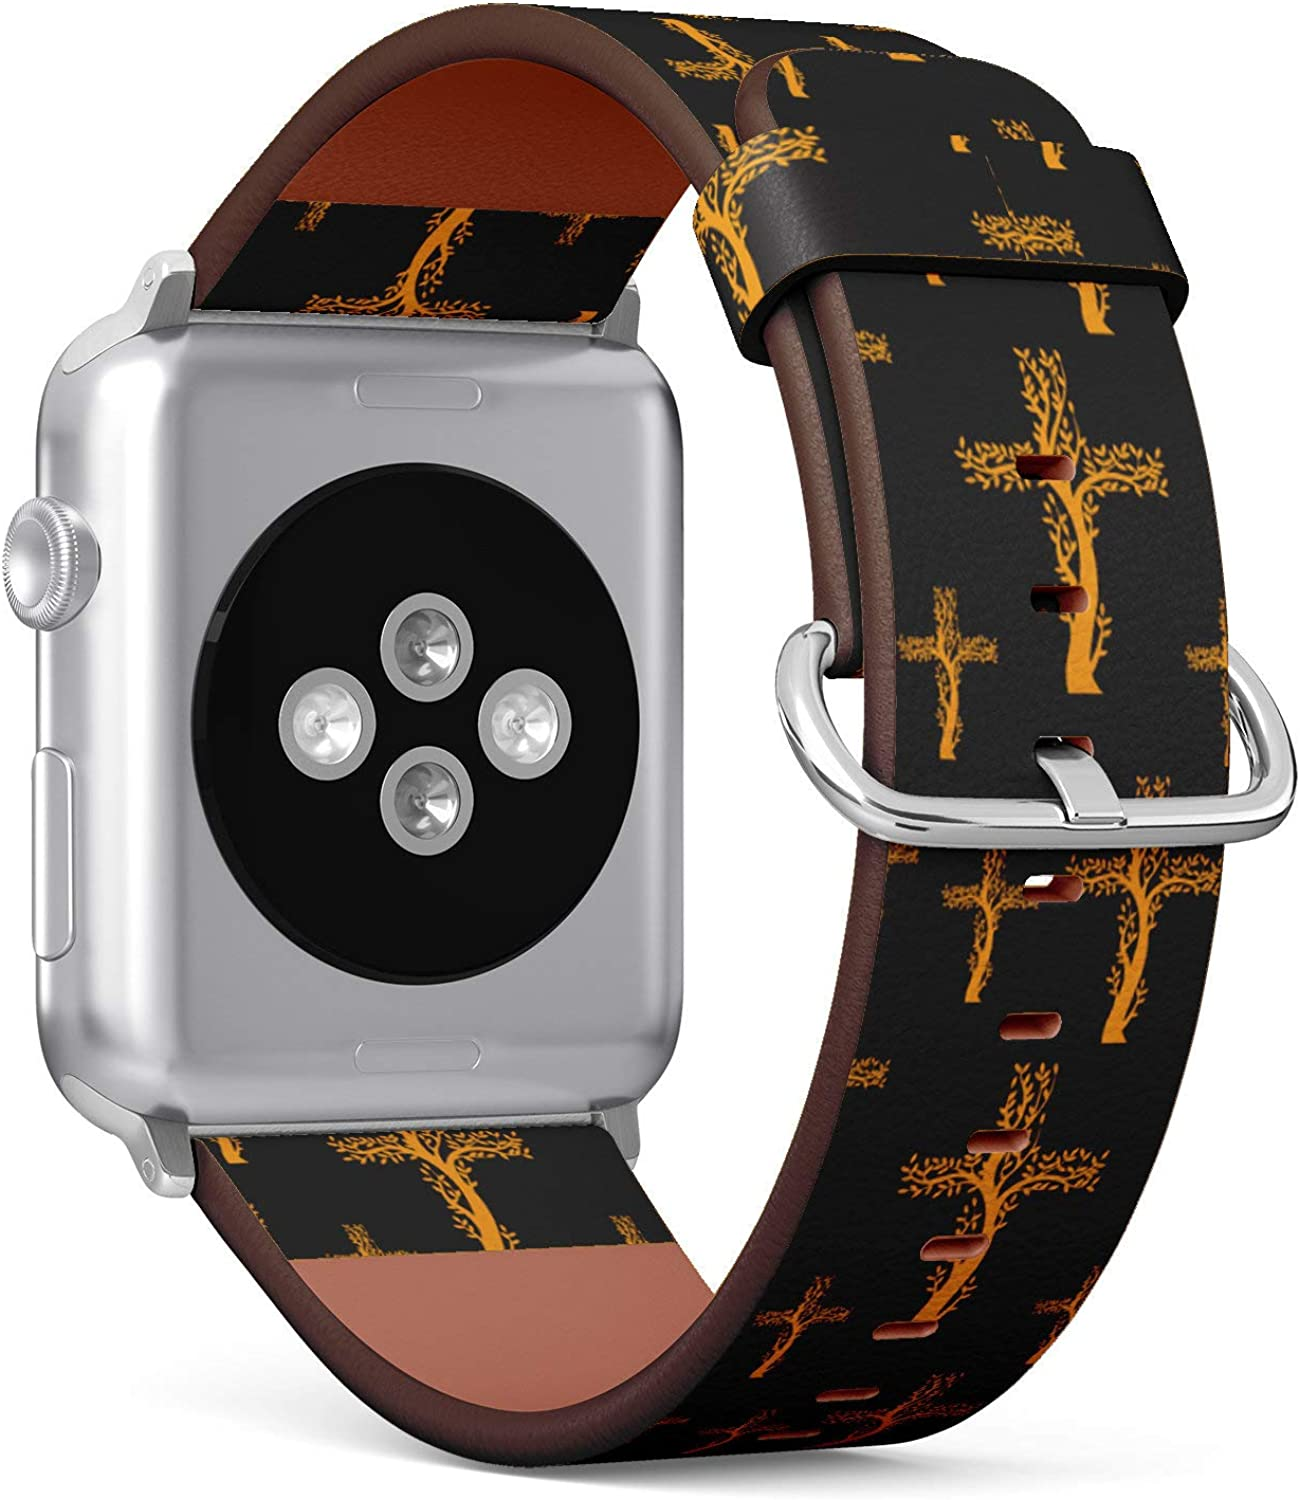 (Gold Christian Cross in The ofm of Tree) Patterned Leather Wristband Strap Compatible with Apple Watch Series 4/3/2/1 gen,Replacement of iWatch 38mm / 40mm Bands